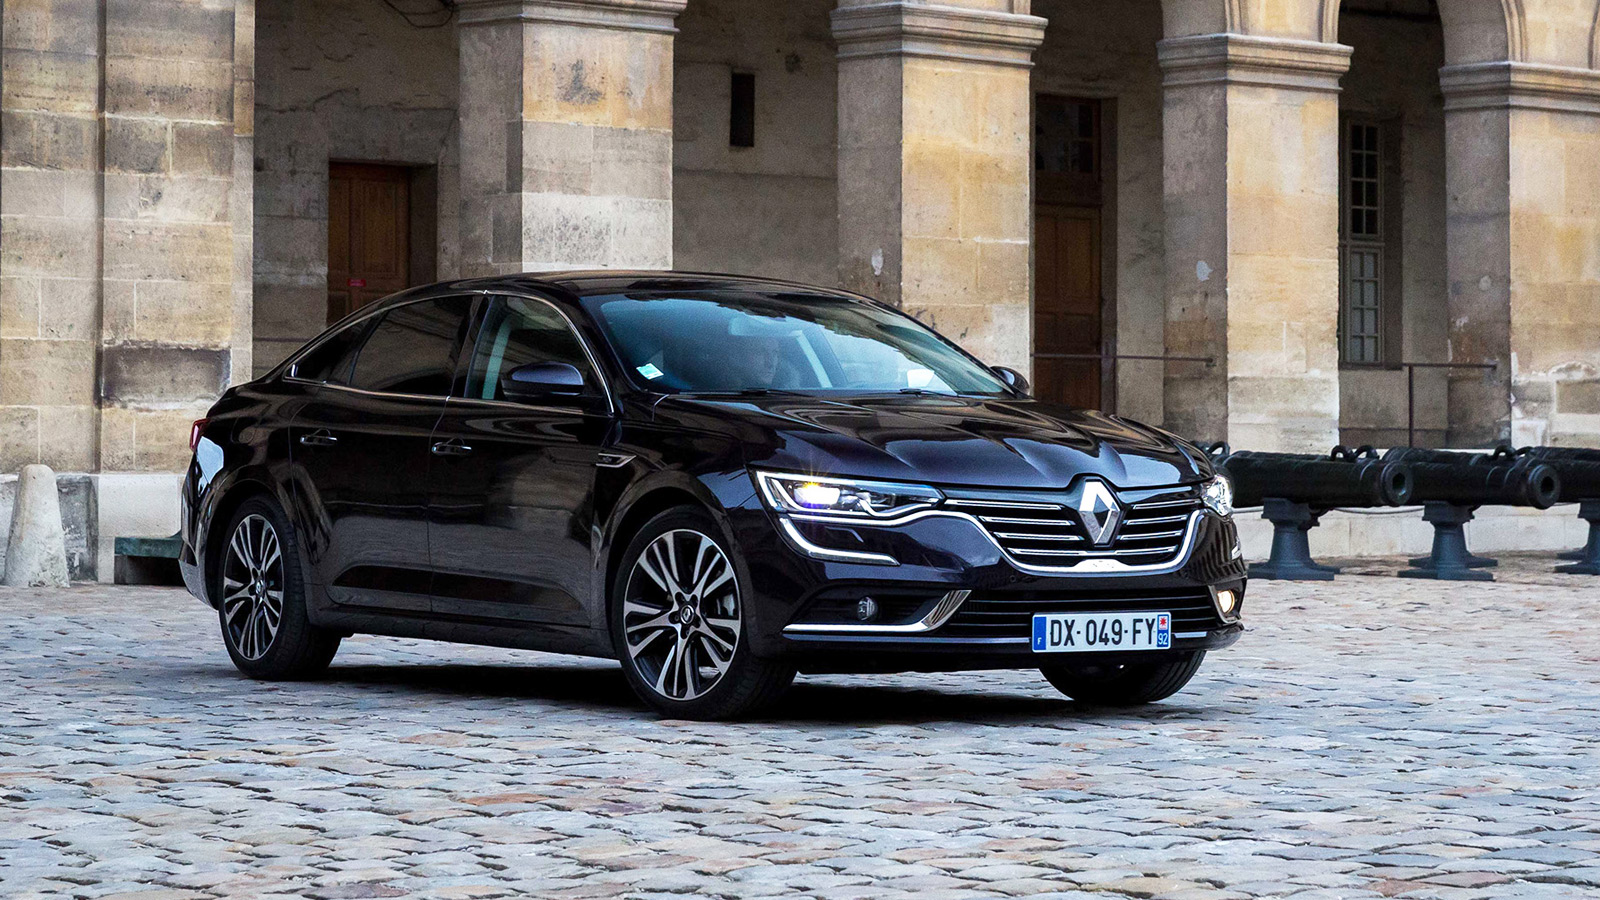 la renault talisman est la plus belle voiture de l 39 ann e 2015 french driver. Black Bedroom Furniture Sets. Home Design Ideas